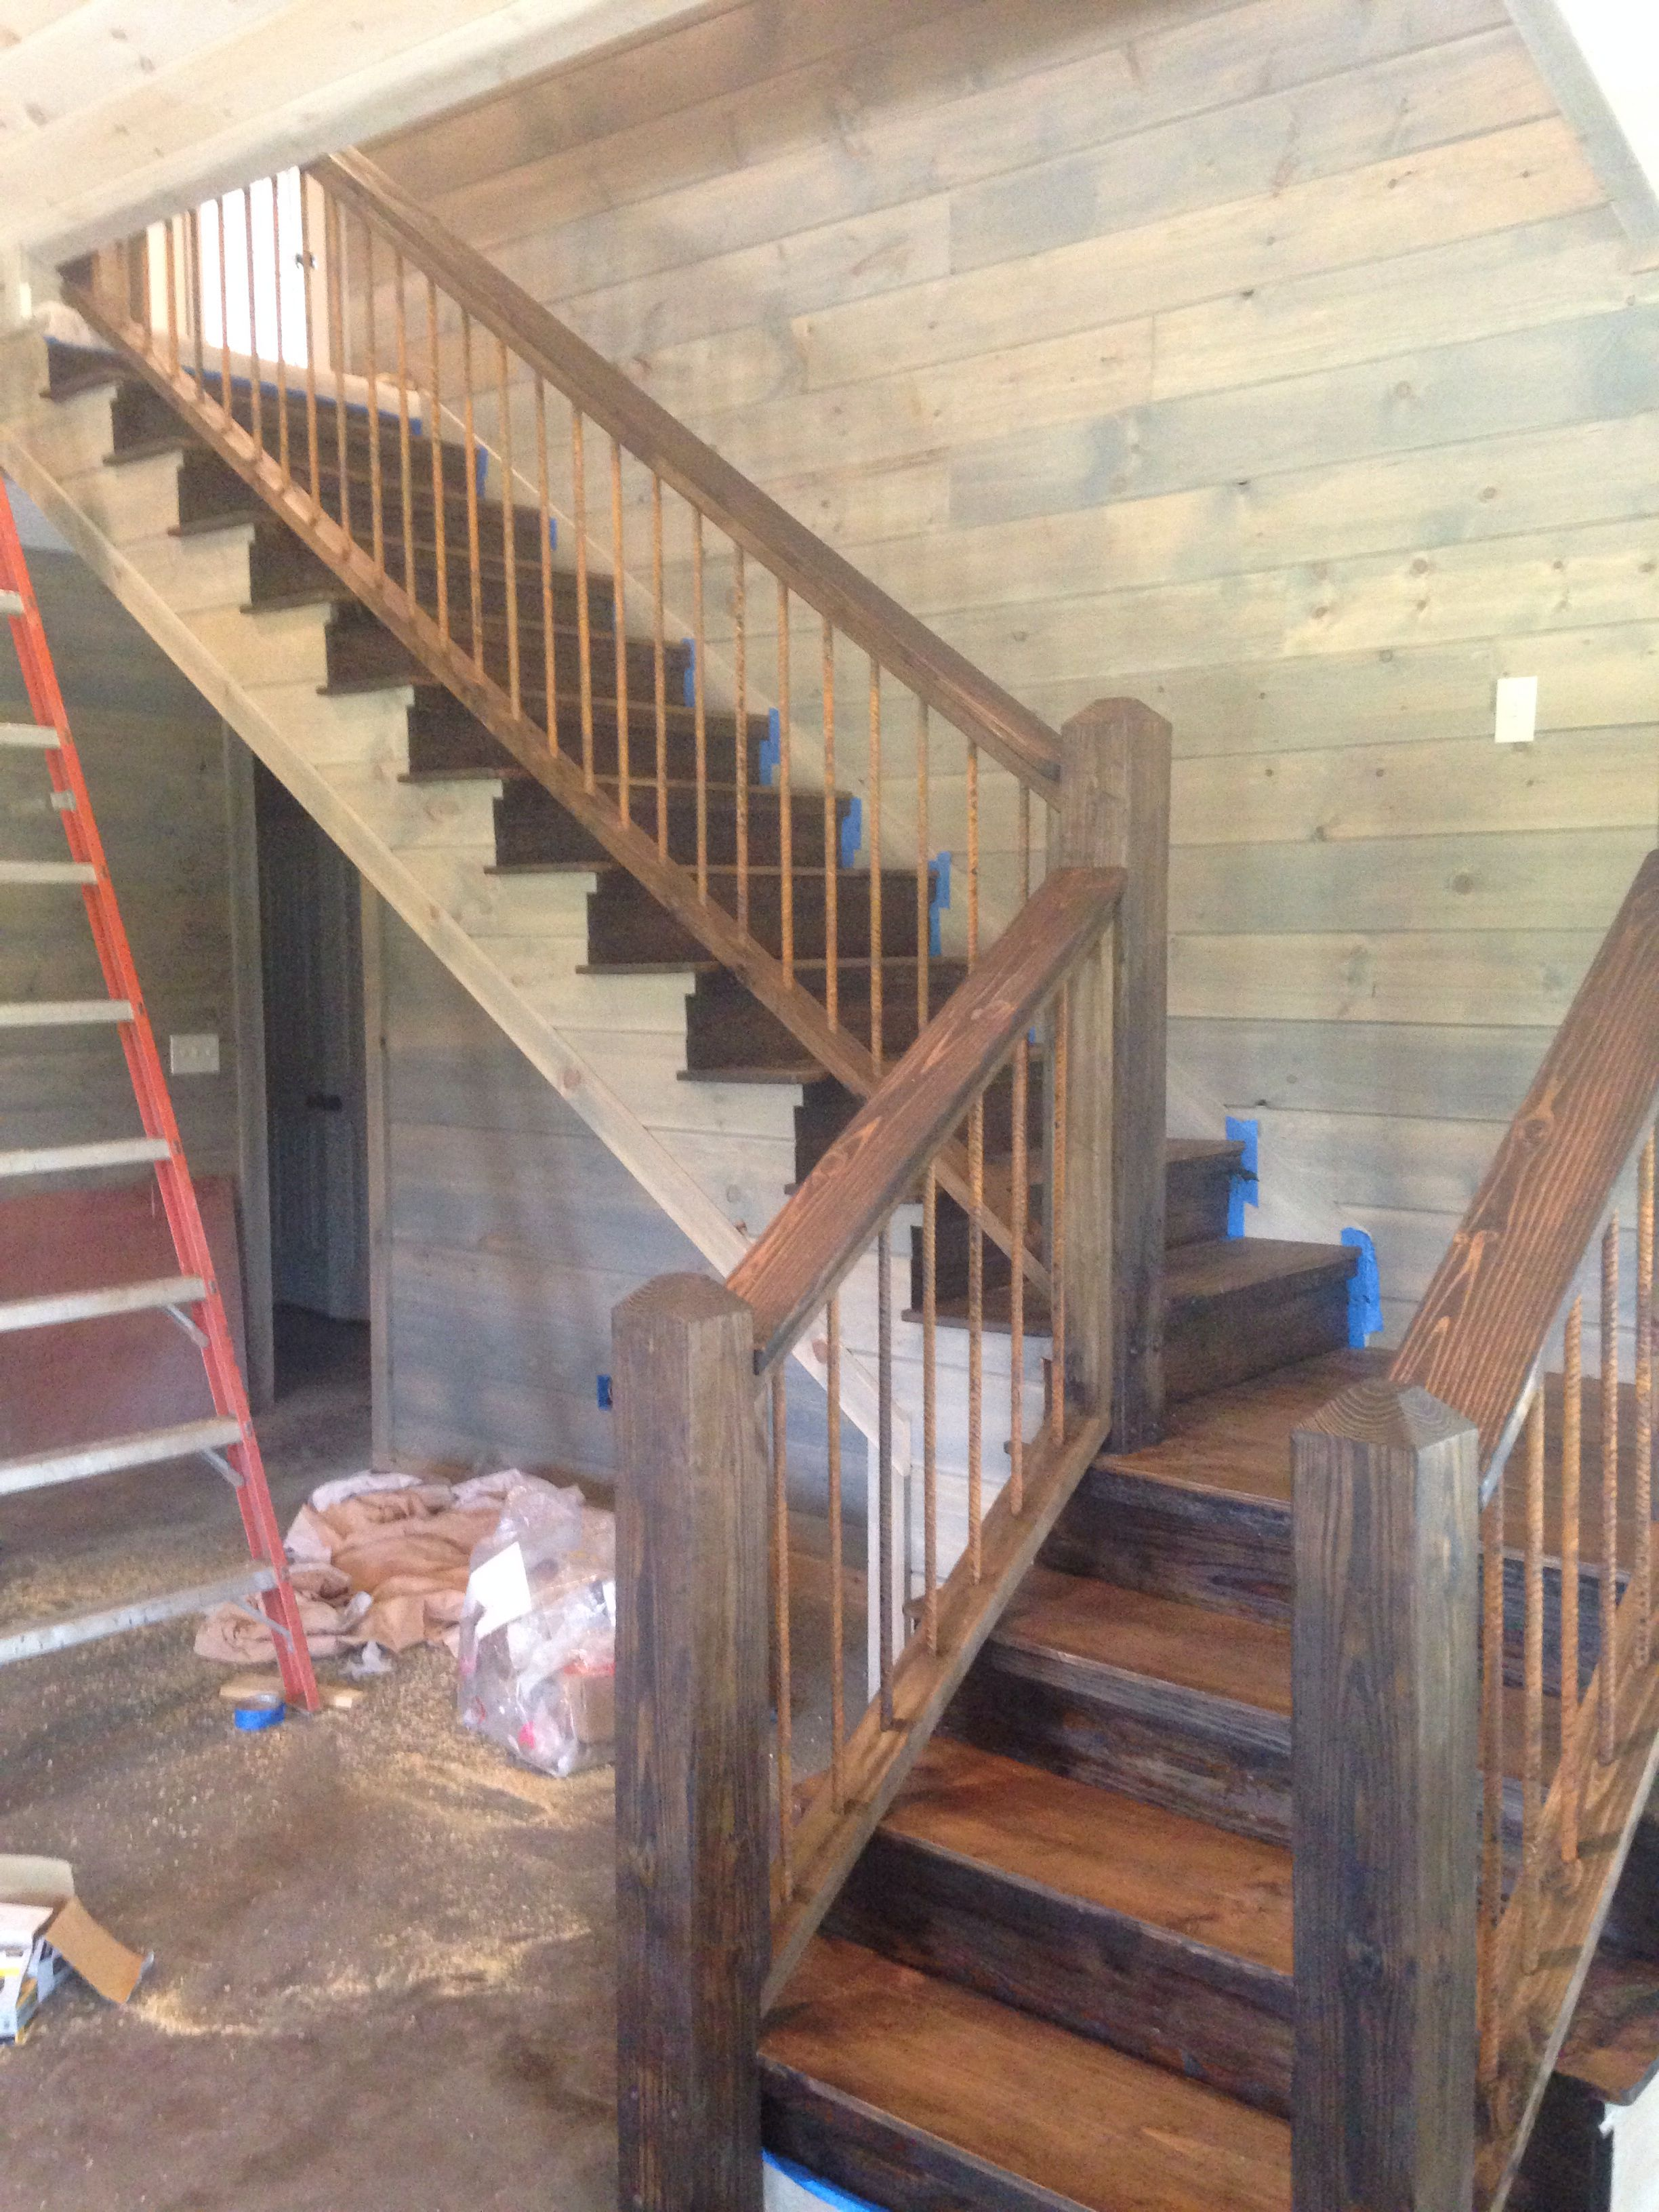 Staircase rusted rebar new house pinterest escalera for Barra bajo escalera